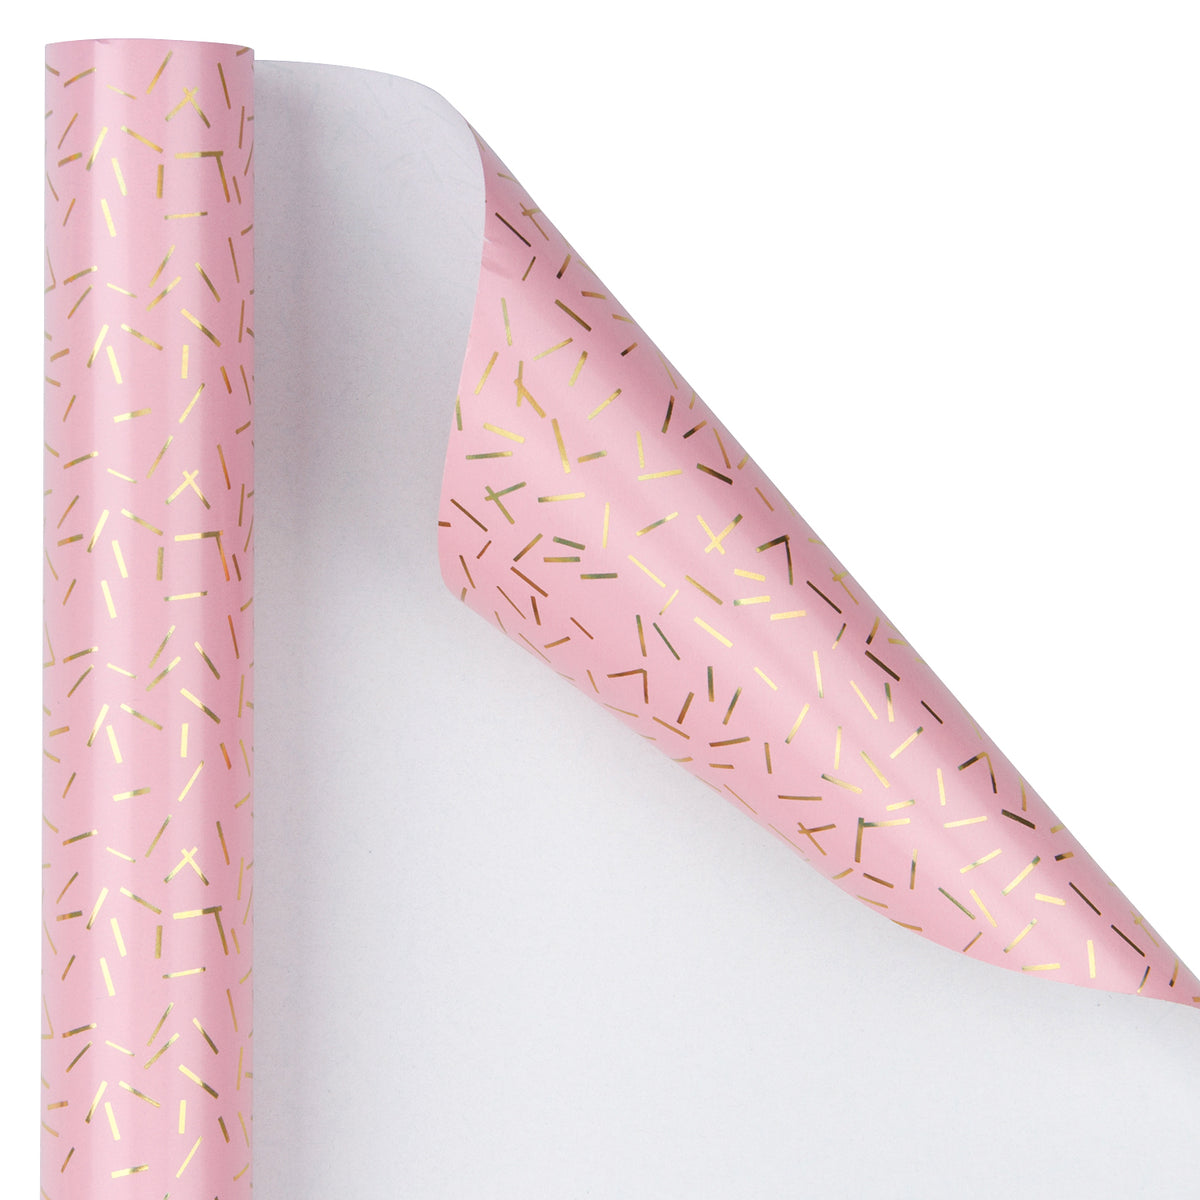 Wrapaholic-Pink-with-Gold Foil-Design- Gift-Wrapping-Paper-Roll-3